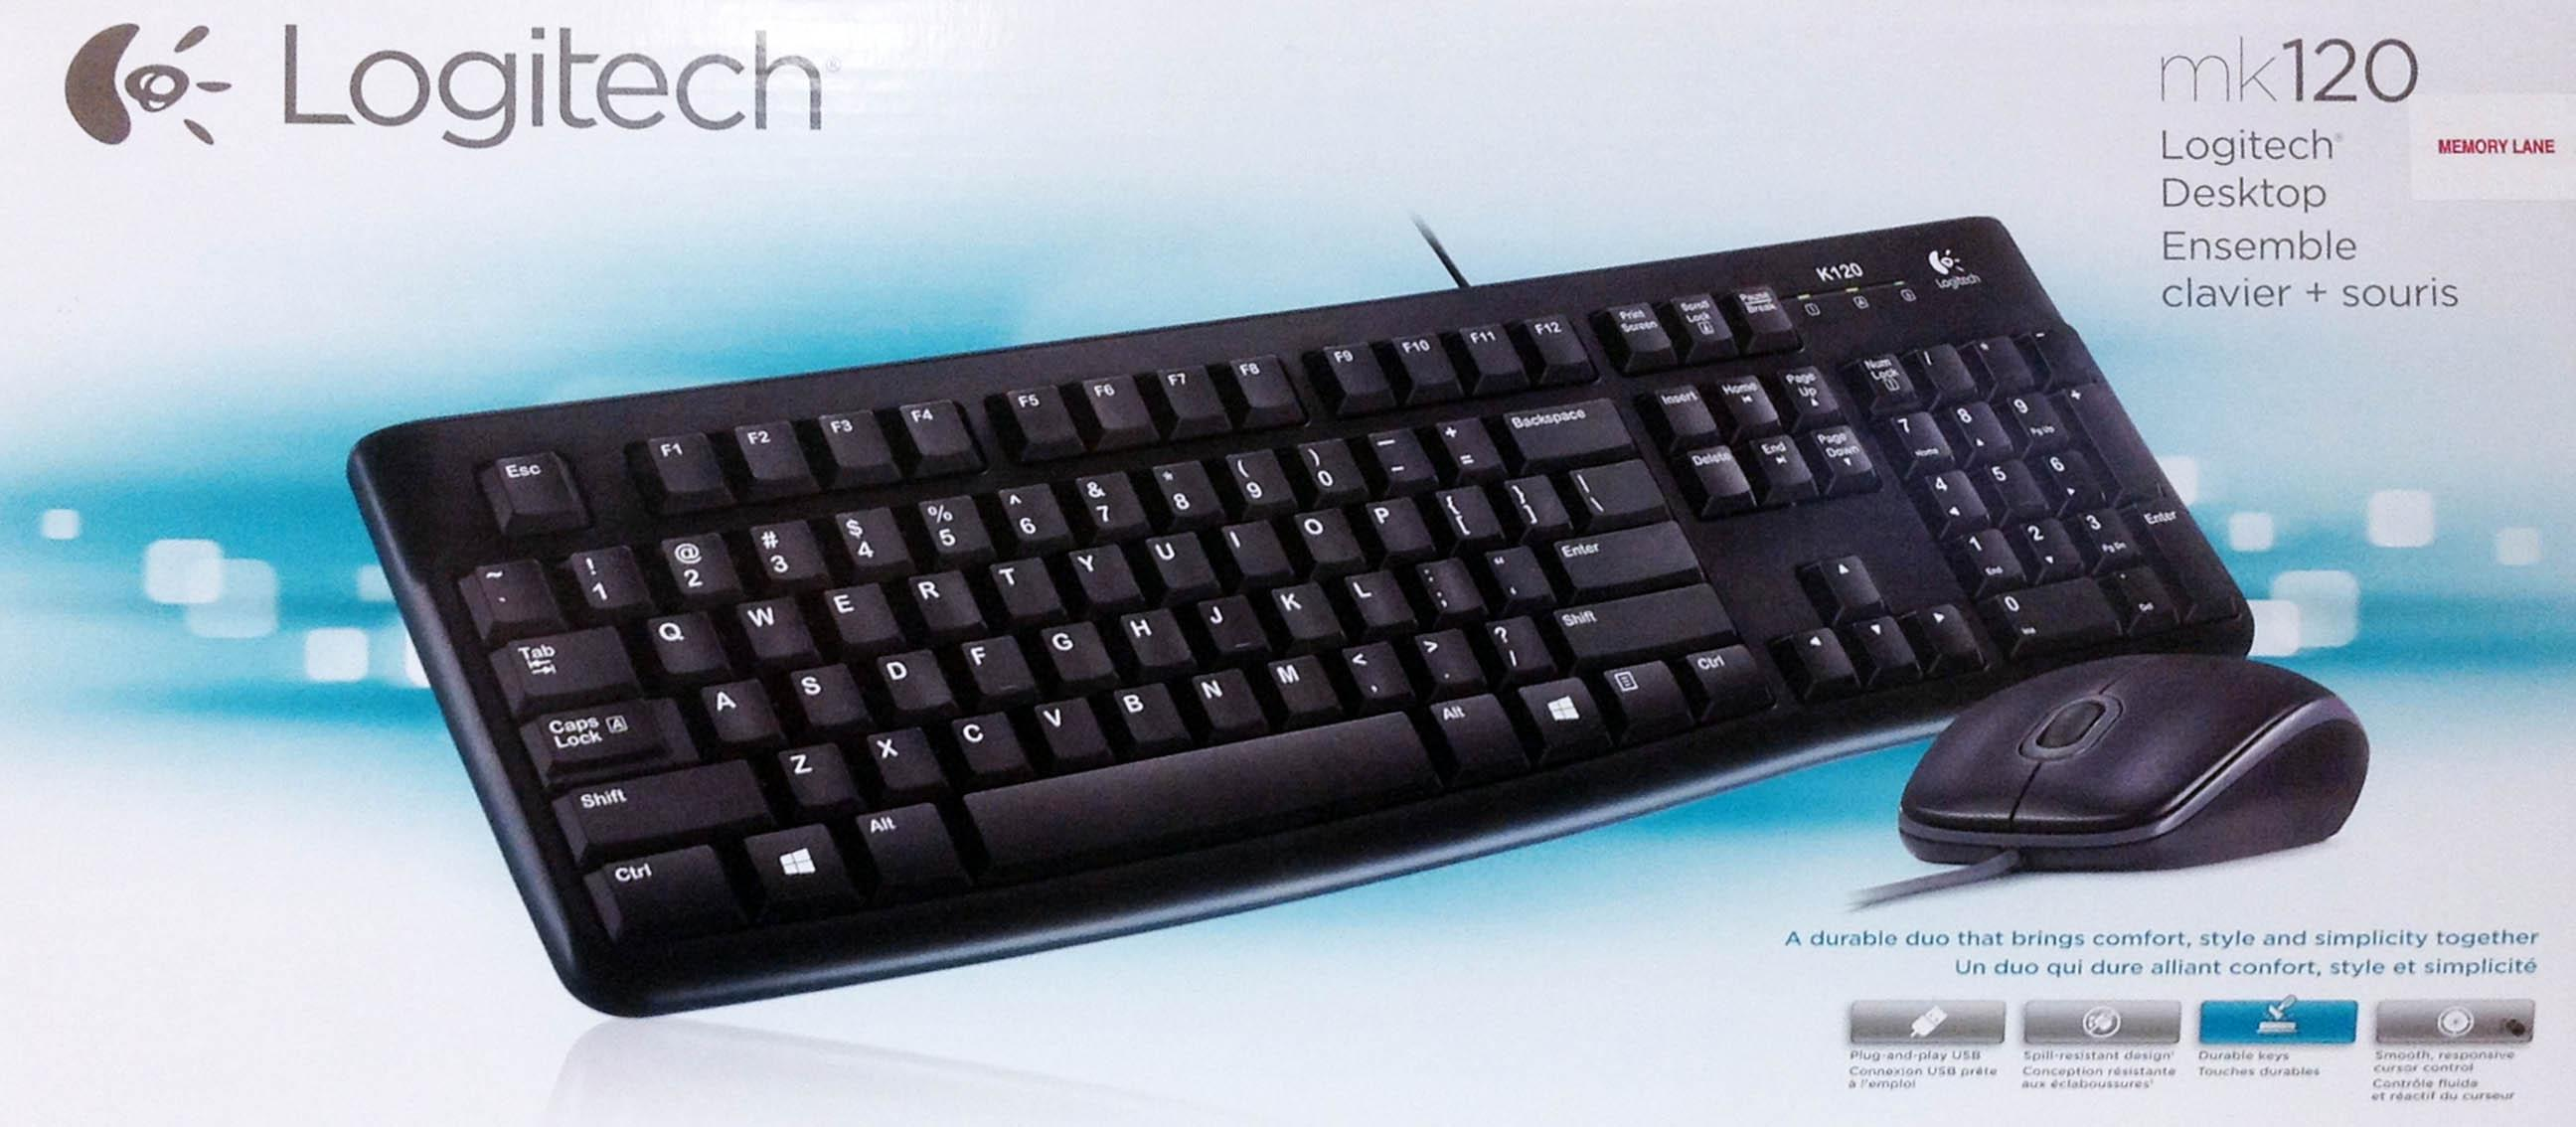 Logitech Keyboard Mouse Bundle Mk120